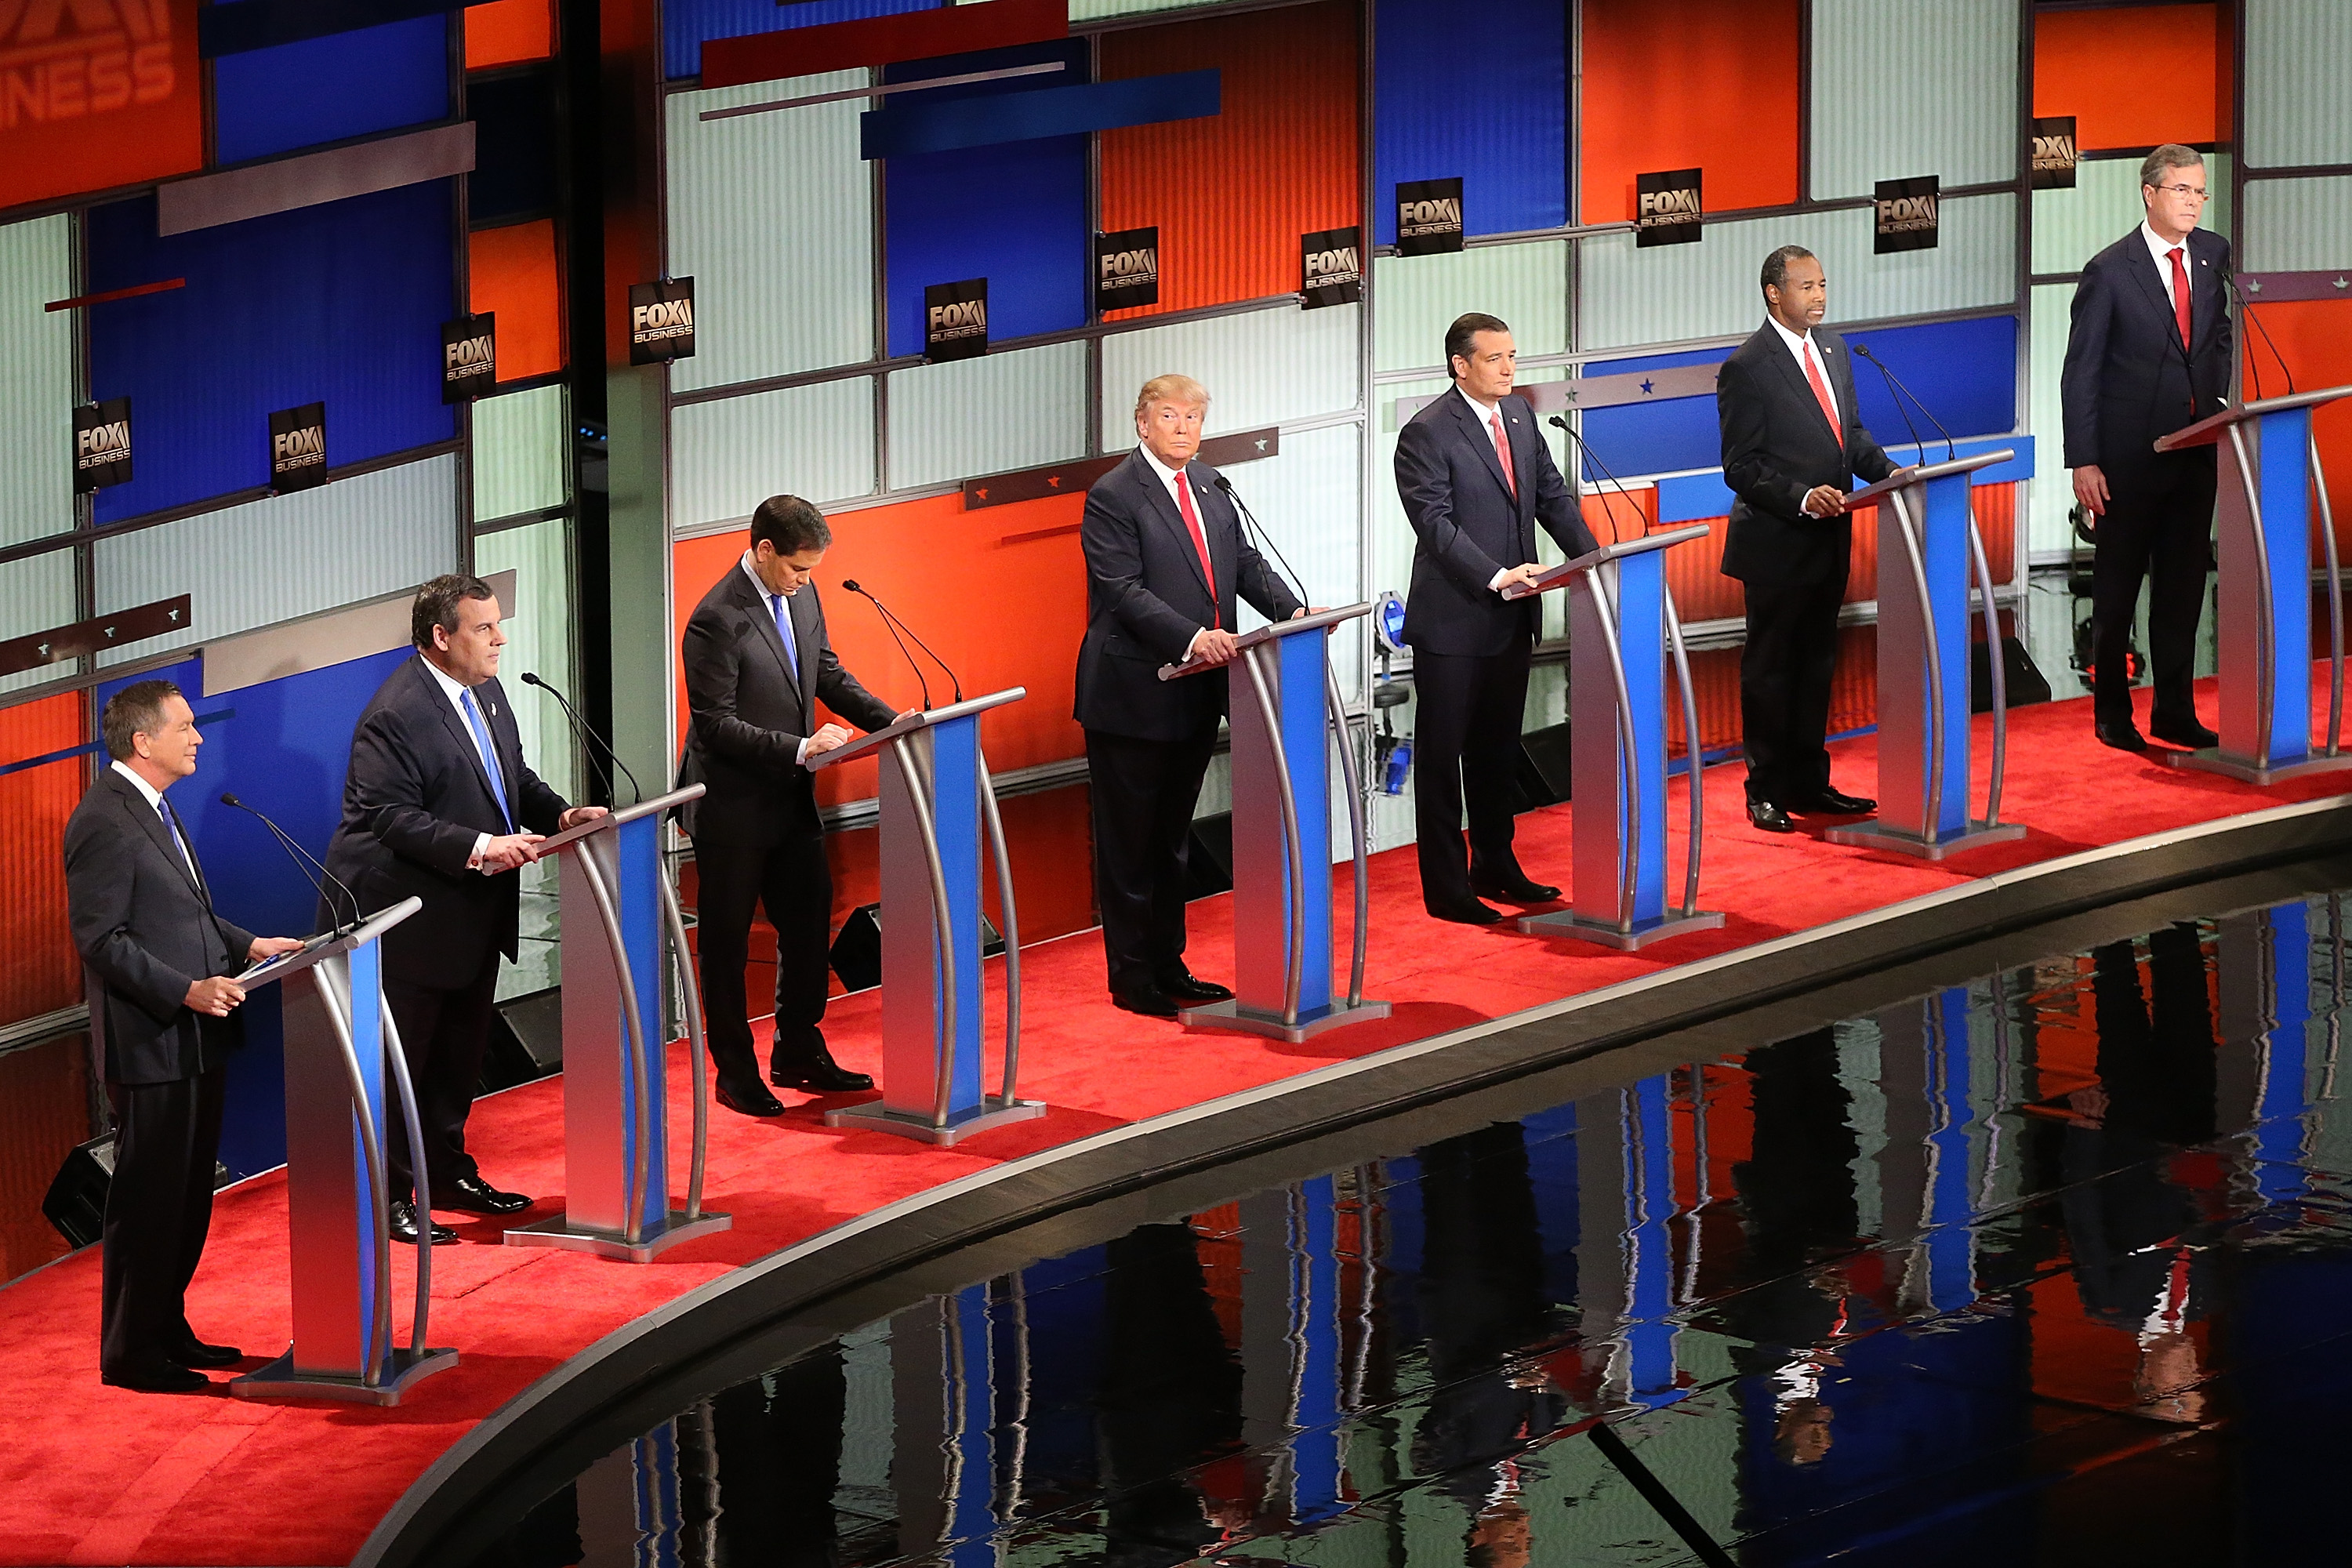 Republican presidential candidates (L-R) Ohio Governor John Kasich, New Jersey Governor Chris Christie, Sen. Marco Rubio (R-FL), Donald Trump, Sen. Ted Cruz (R-TX), Ben Carson and Jeb Bush participate in the Fox Business Network Republican presidential debate at the North Charleston Coliseum and Performing Arts Center in North Charleston, South Carolina, on Jan. 14, 2016